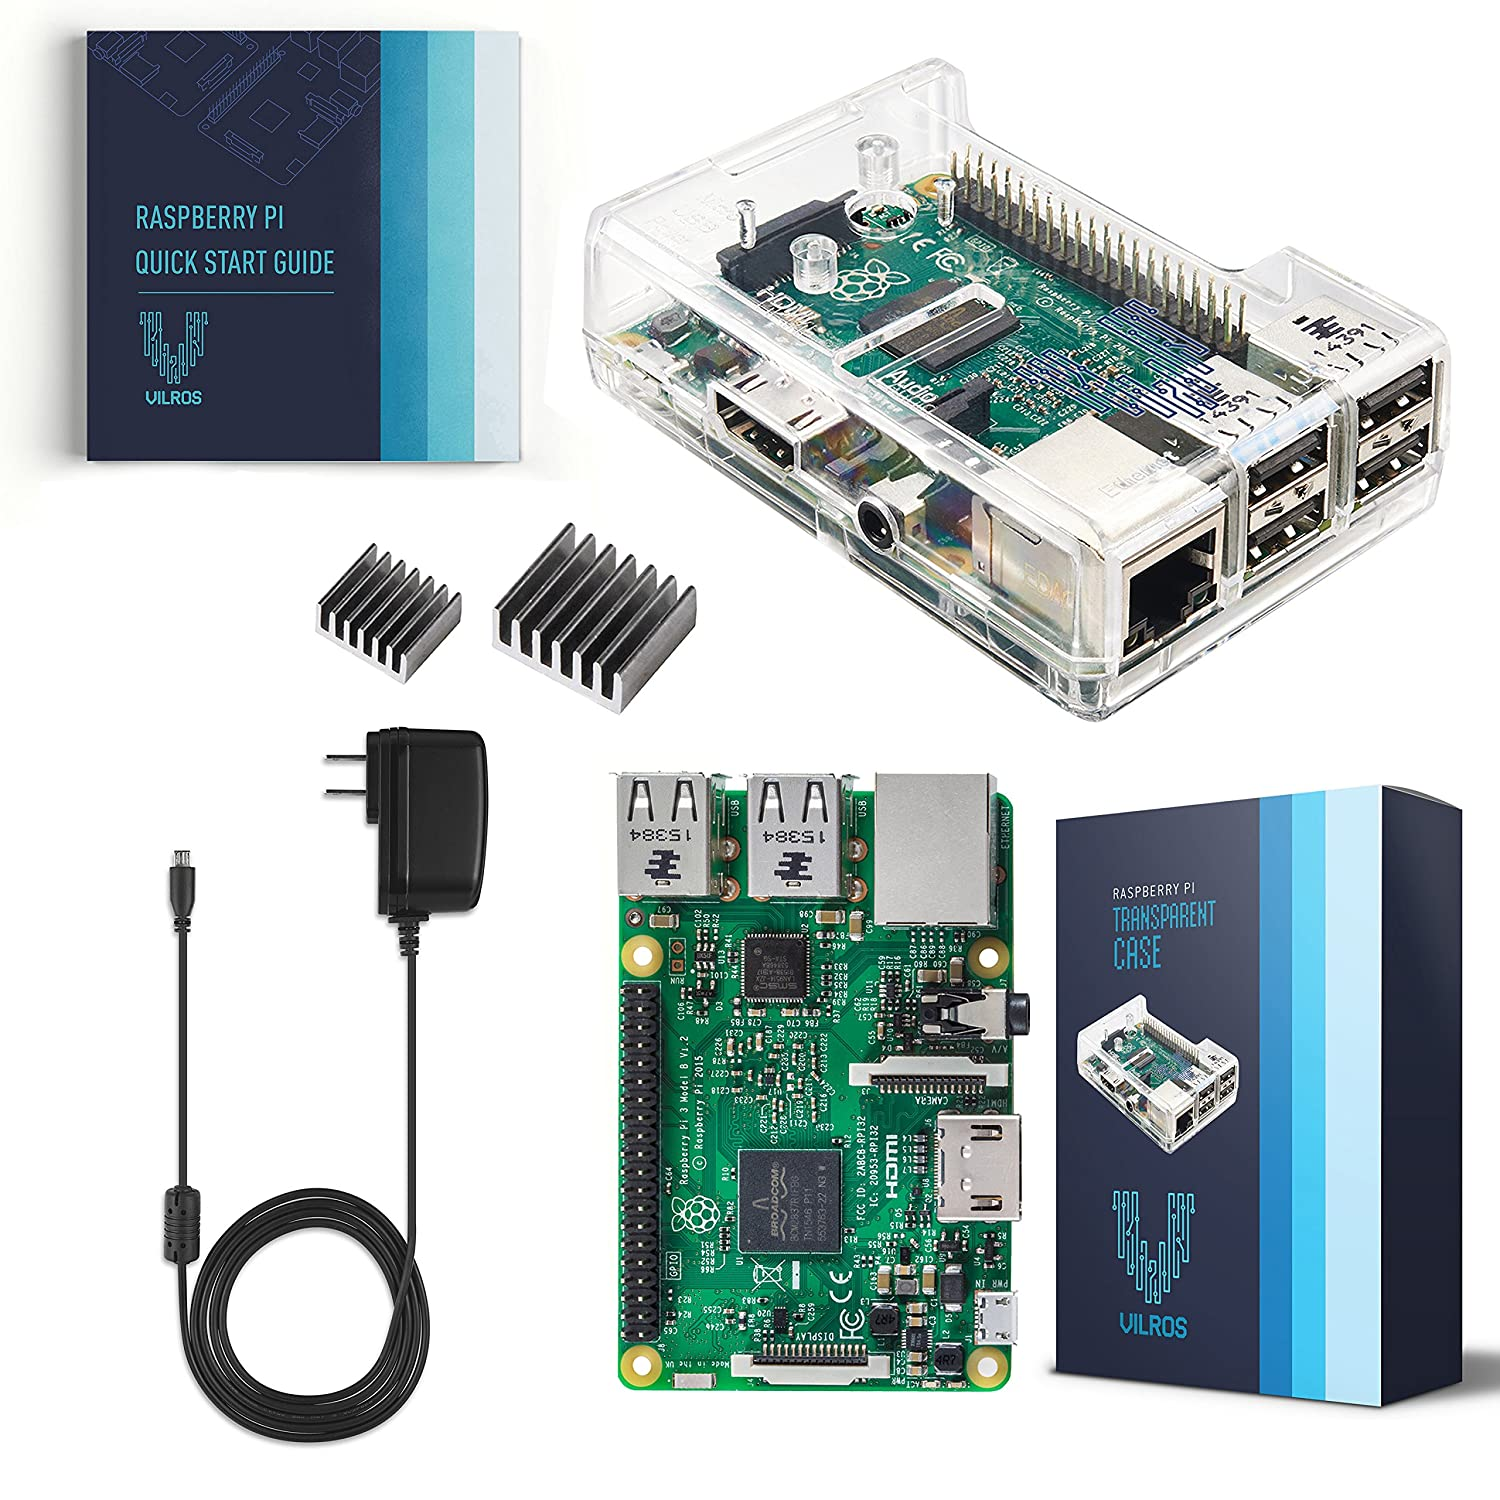 Raspberry Pi board and accessories buying guide